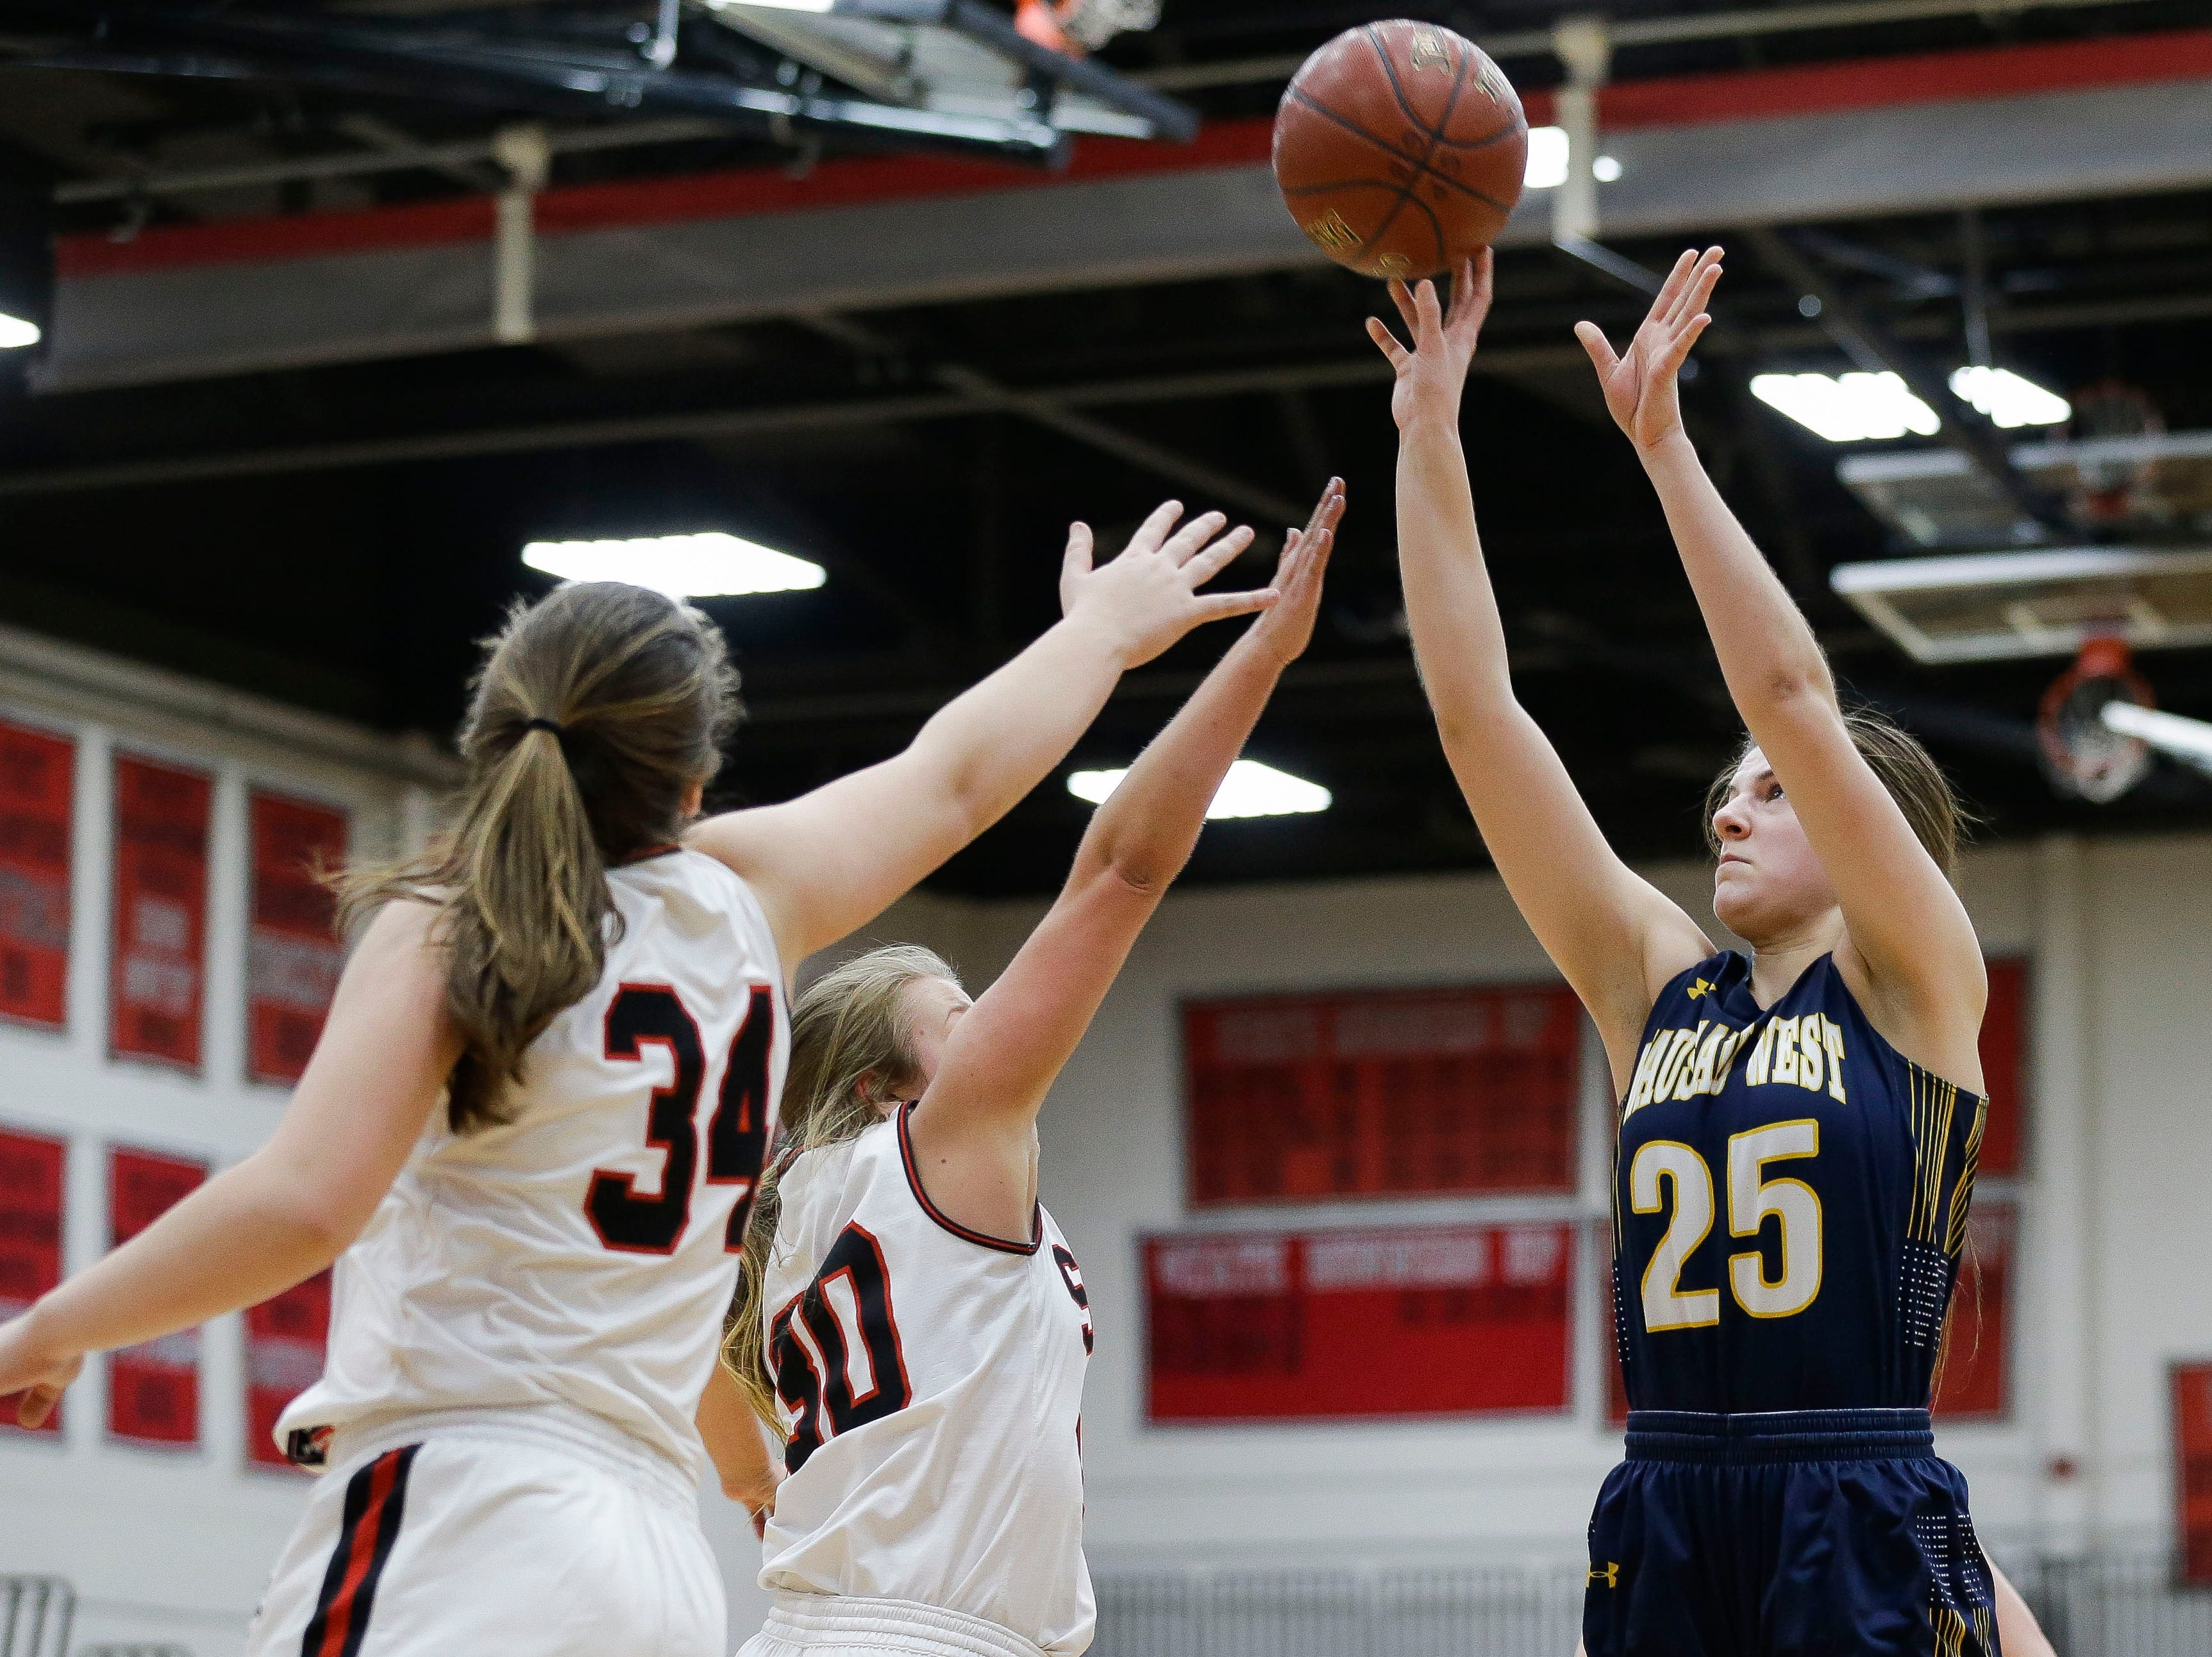 Wausau West's Tess Hauer (25) puts up a shot against SPASH on Thursday, February 14, 2019, at SPASH in Stevens Point, Wis.Tork Mason/USA TODAY NETWORK-Wisconsin